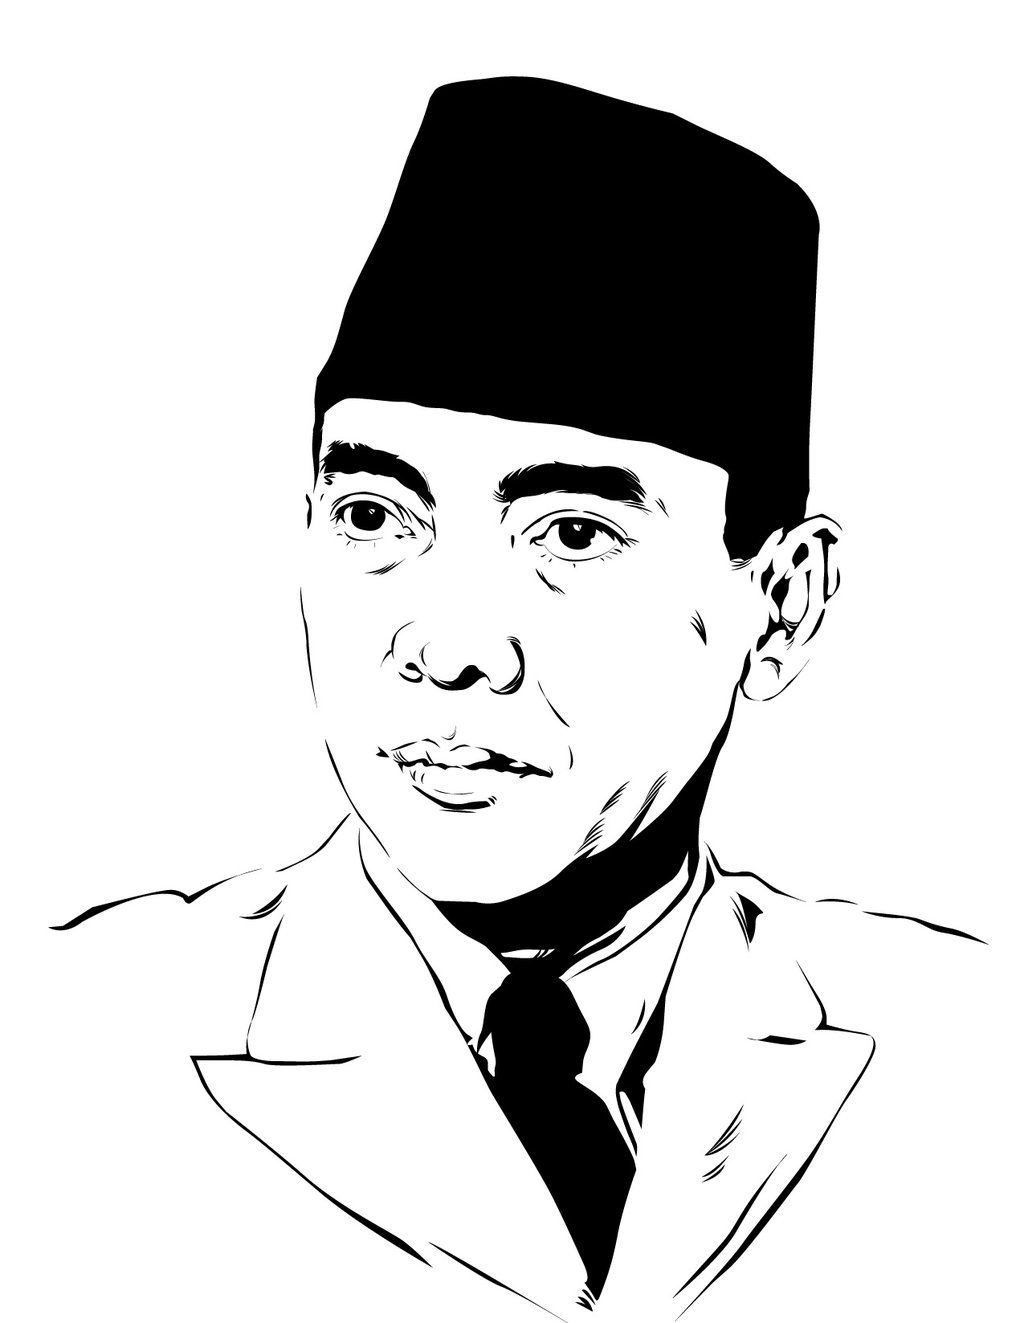 Soekarno By Astayogaviantart On DeviantArt